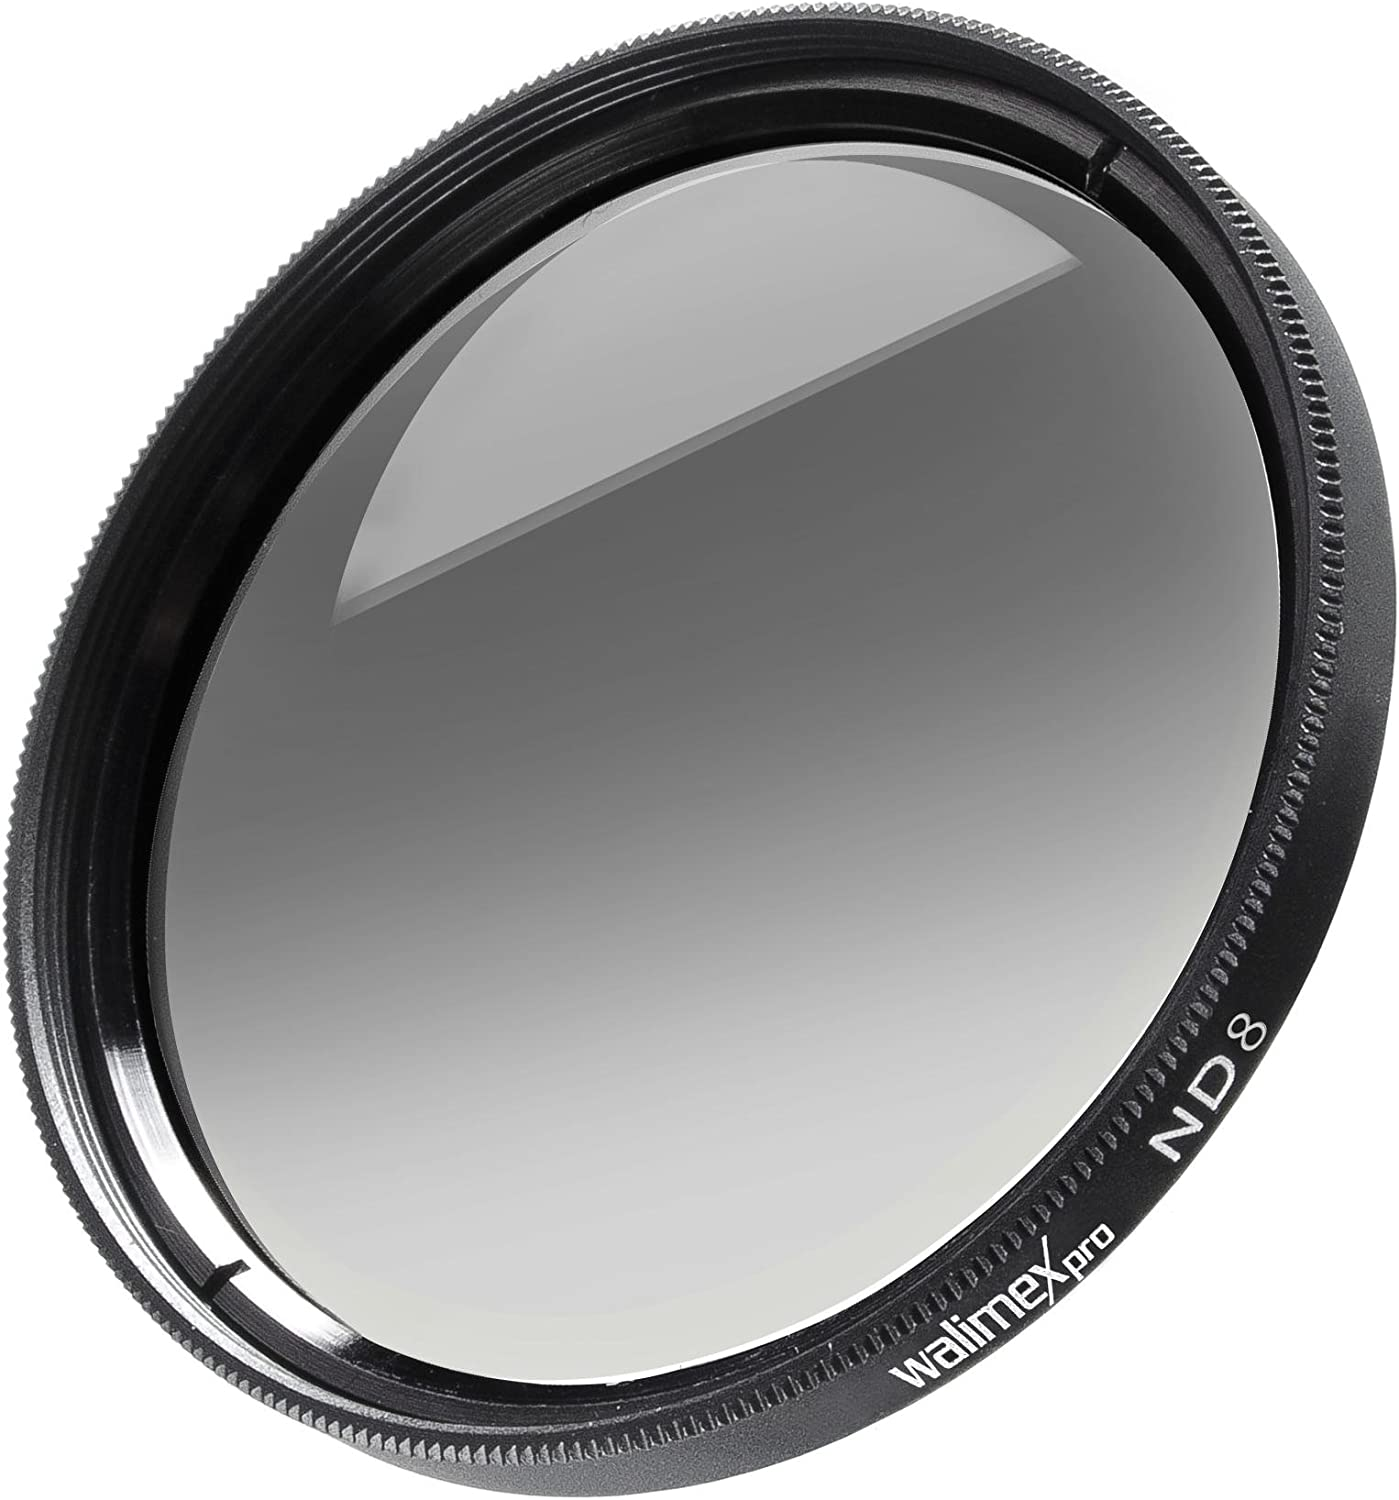 walimex pro 58mm ND8 Coated Filter for Camera